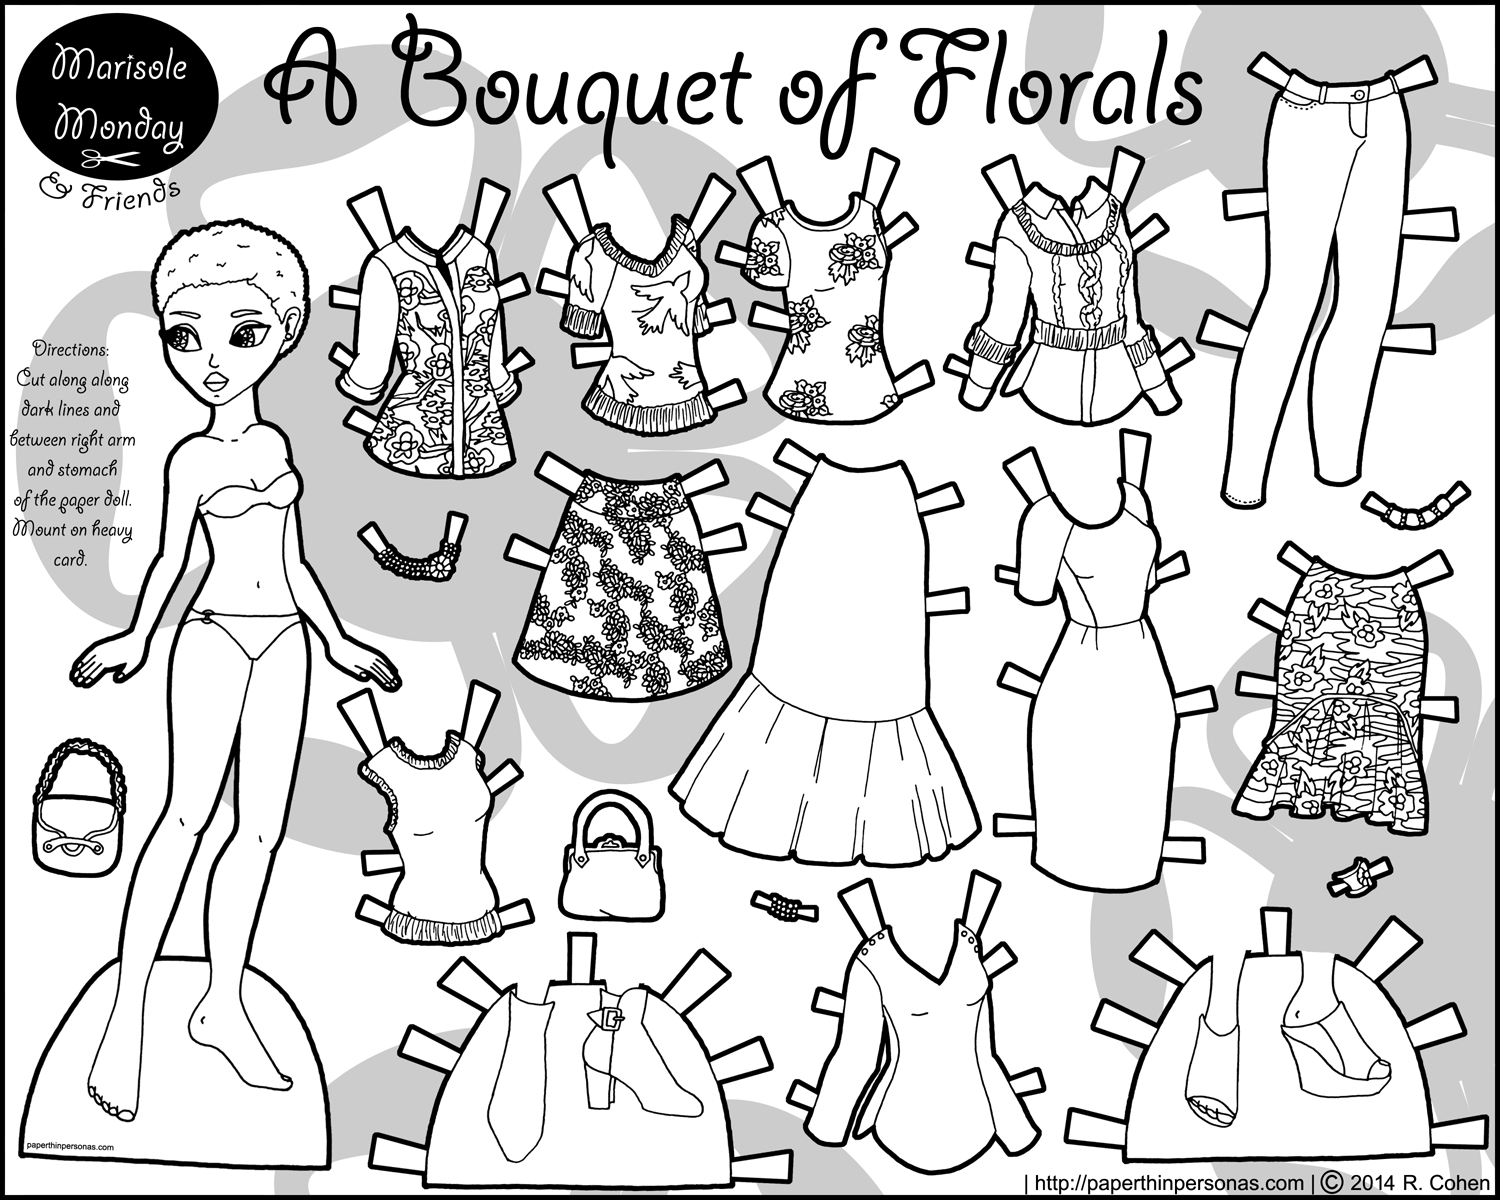 Uncategorized Paper Doll Coloring Page printable paper doll coloring page bouquet of florals page